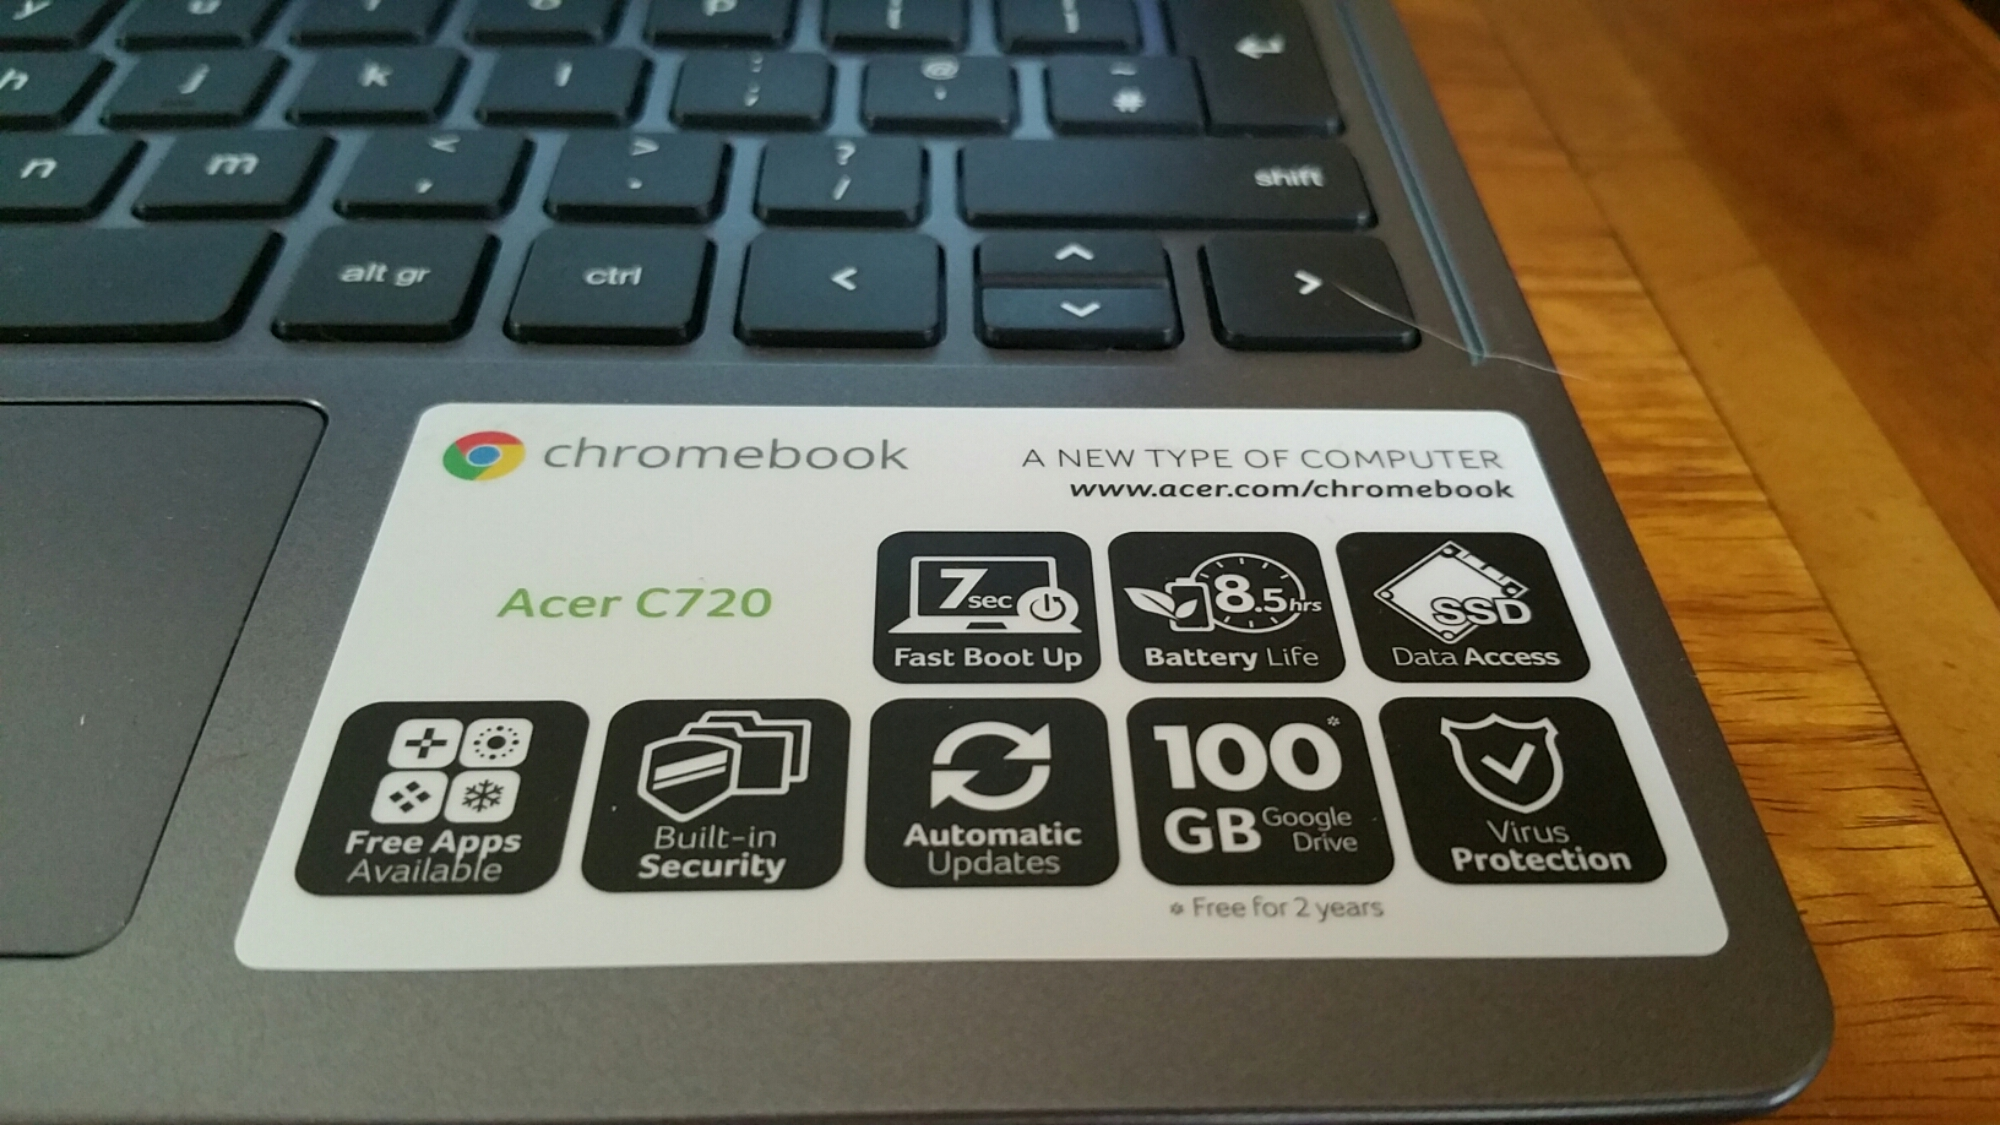 Acer C720 ChromeBook review | Gavin's Gadgets